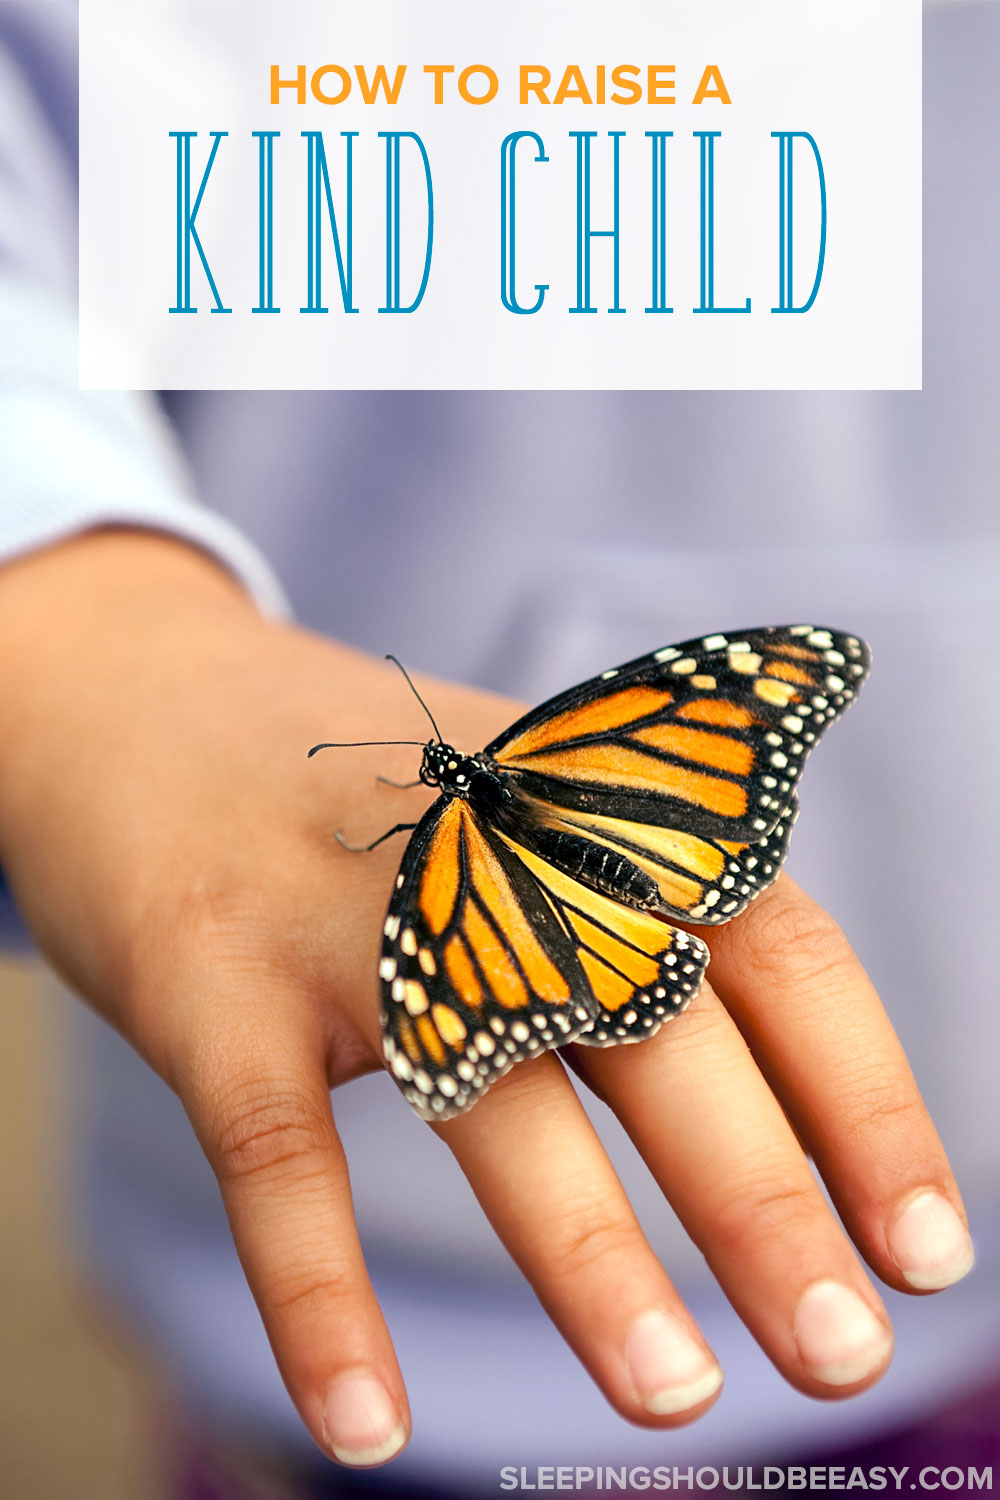 We all aspire to raise kind children who are compassionate to others. Here are 7 tips on how to raise a kind child. Learn how to teach a child to be kind to others, especially those who need it most.